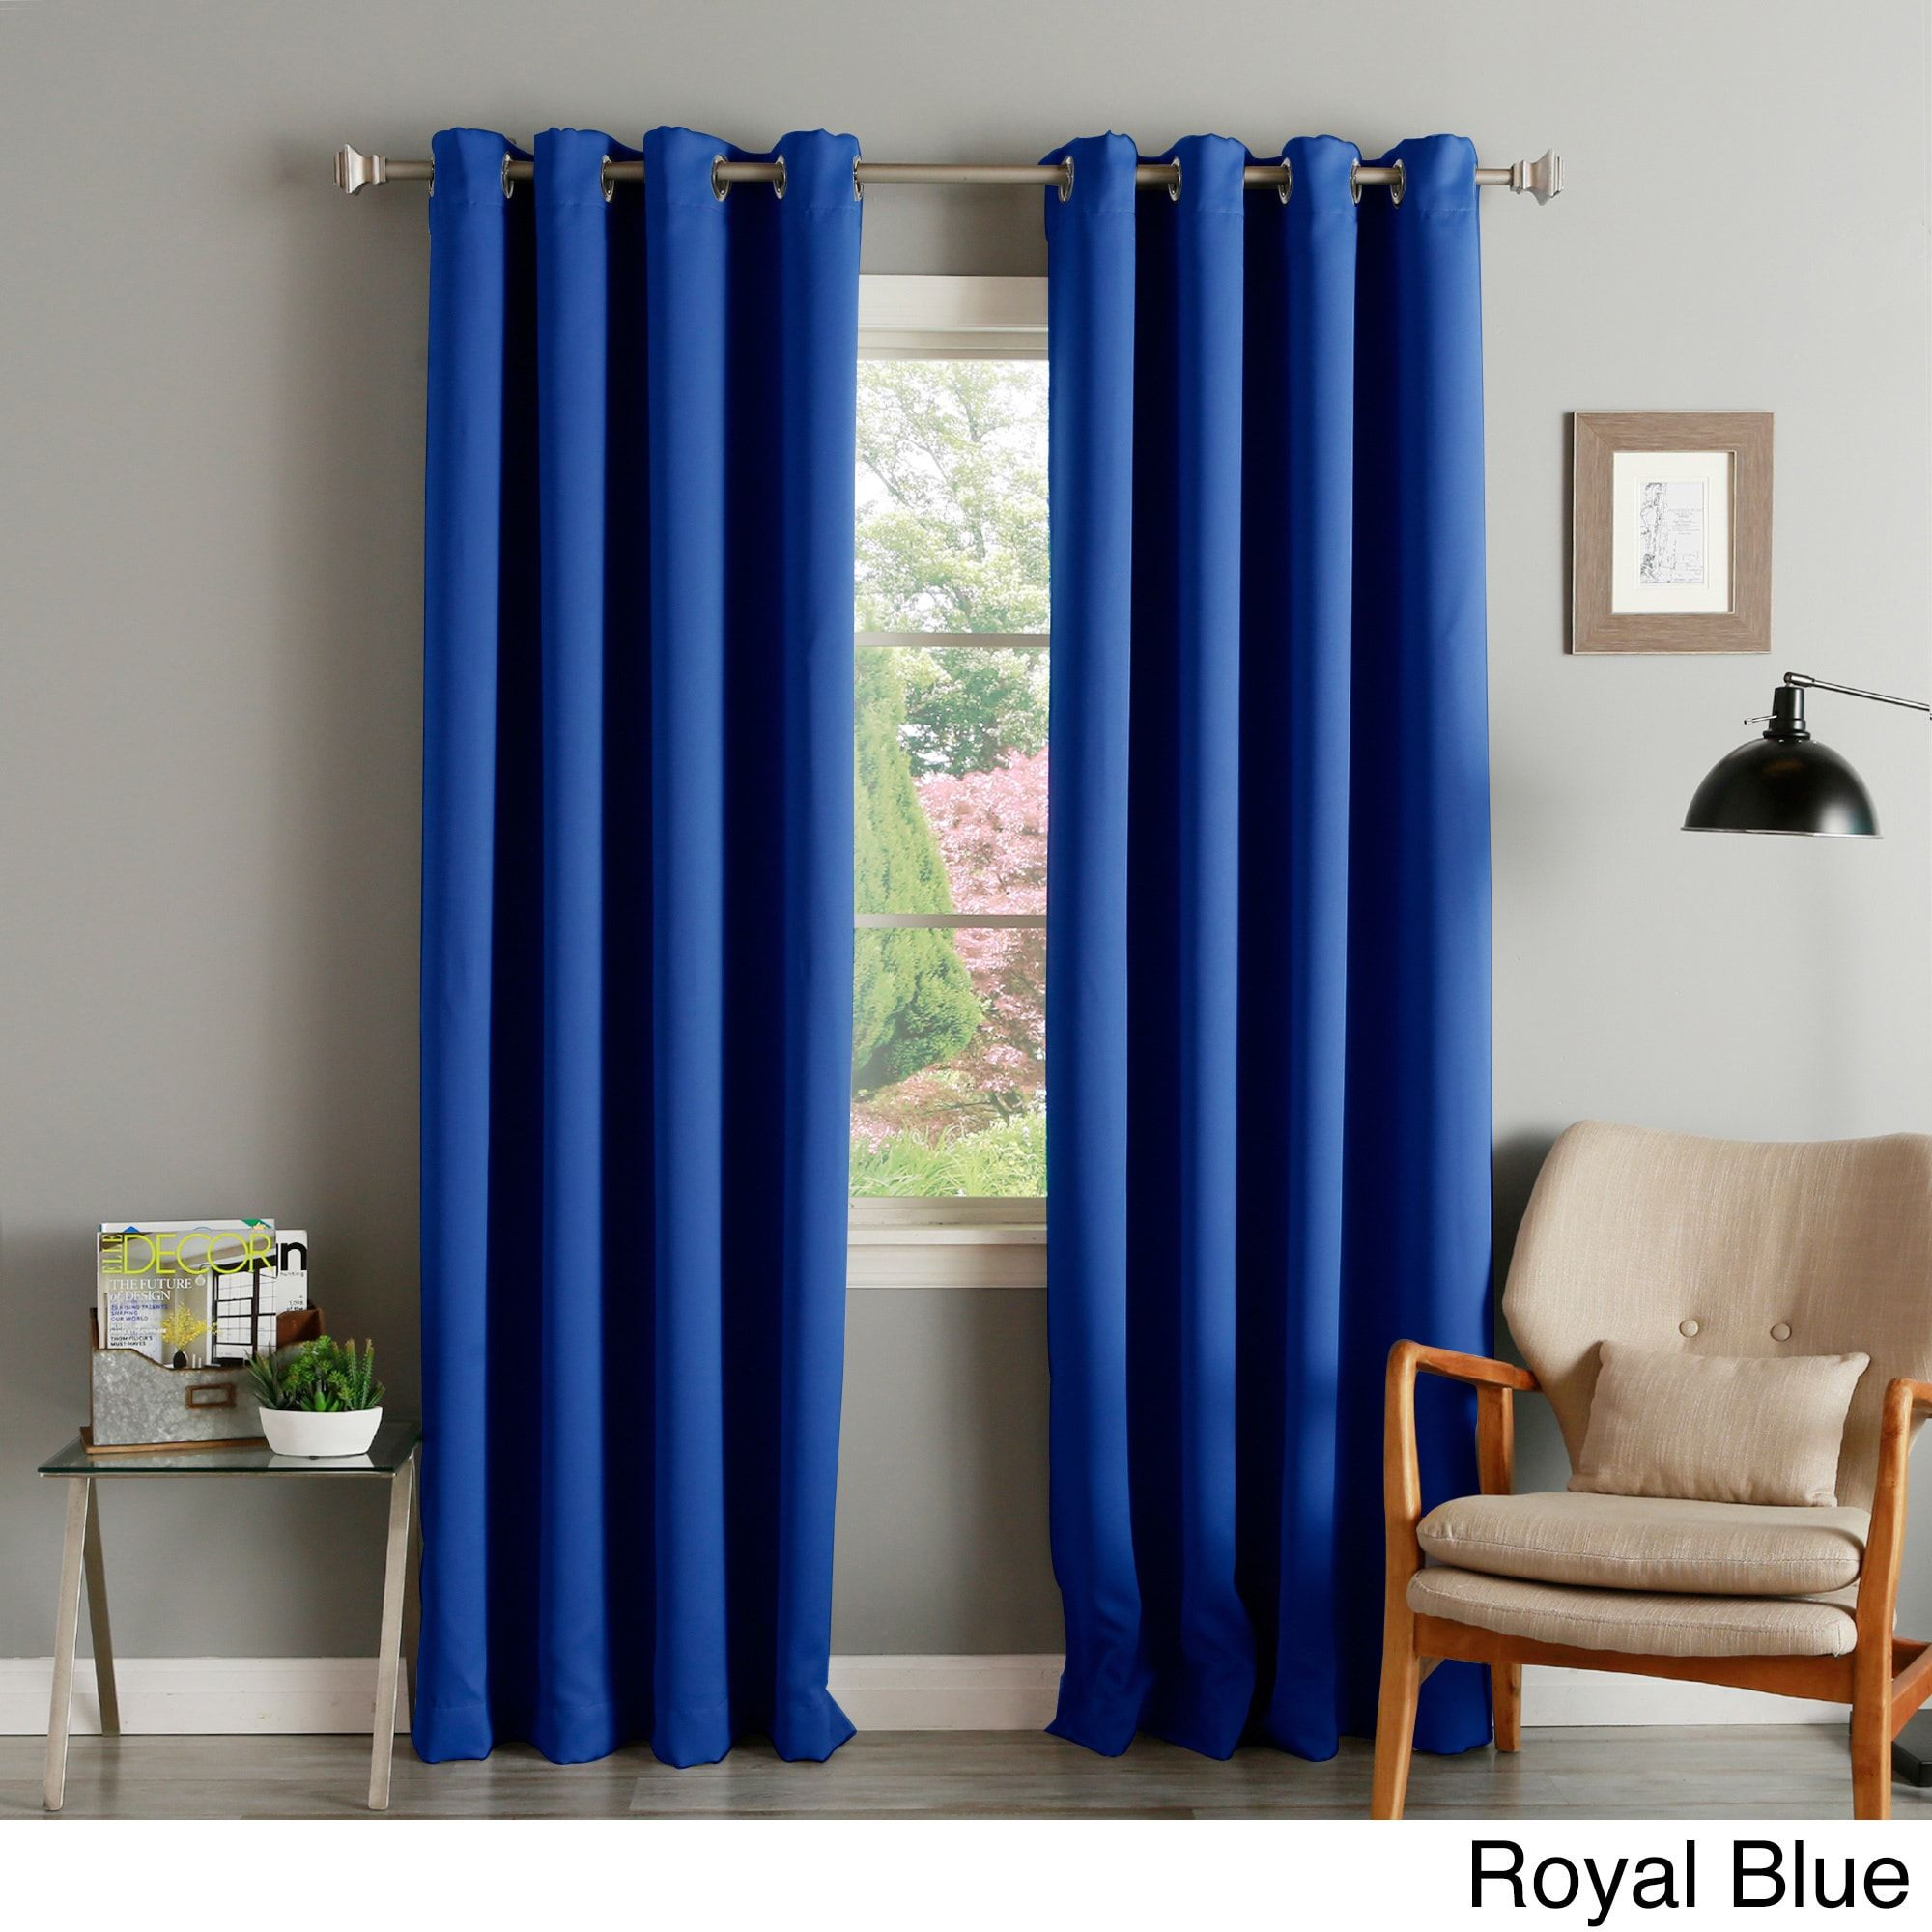 New 96 Inch Long Blackout Curtains